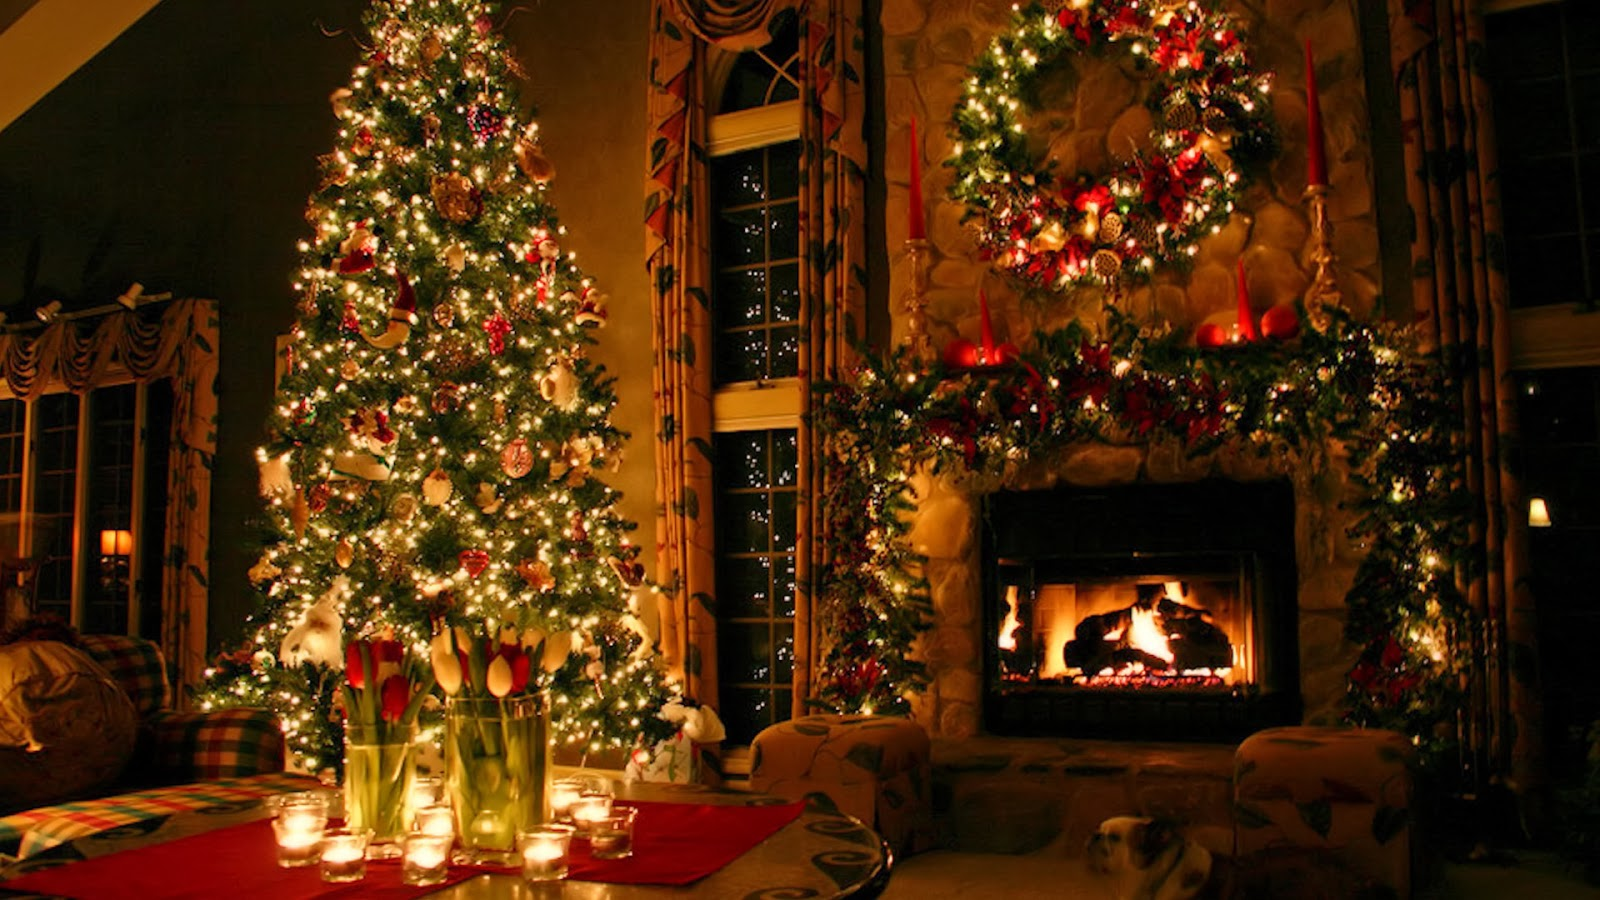 Christmas decorations ideas world top blogger for Christmas decorations ideas to make at home